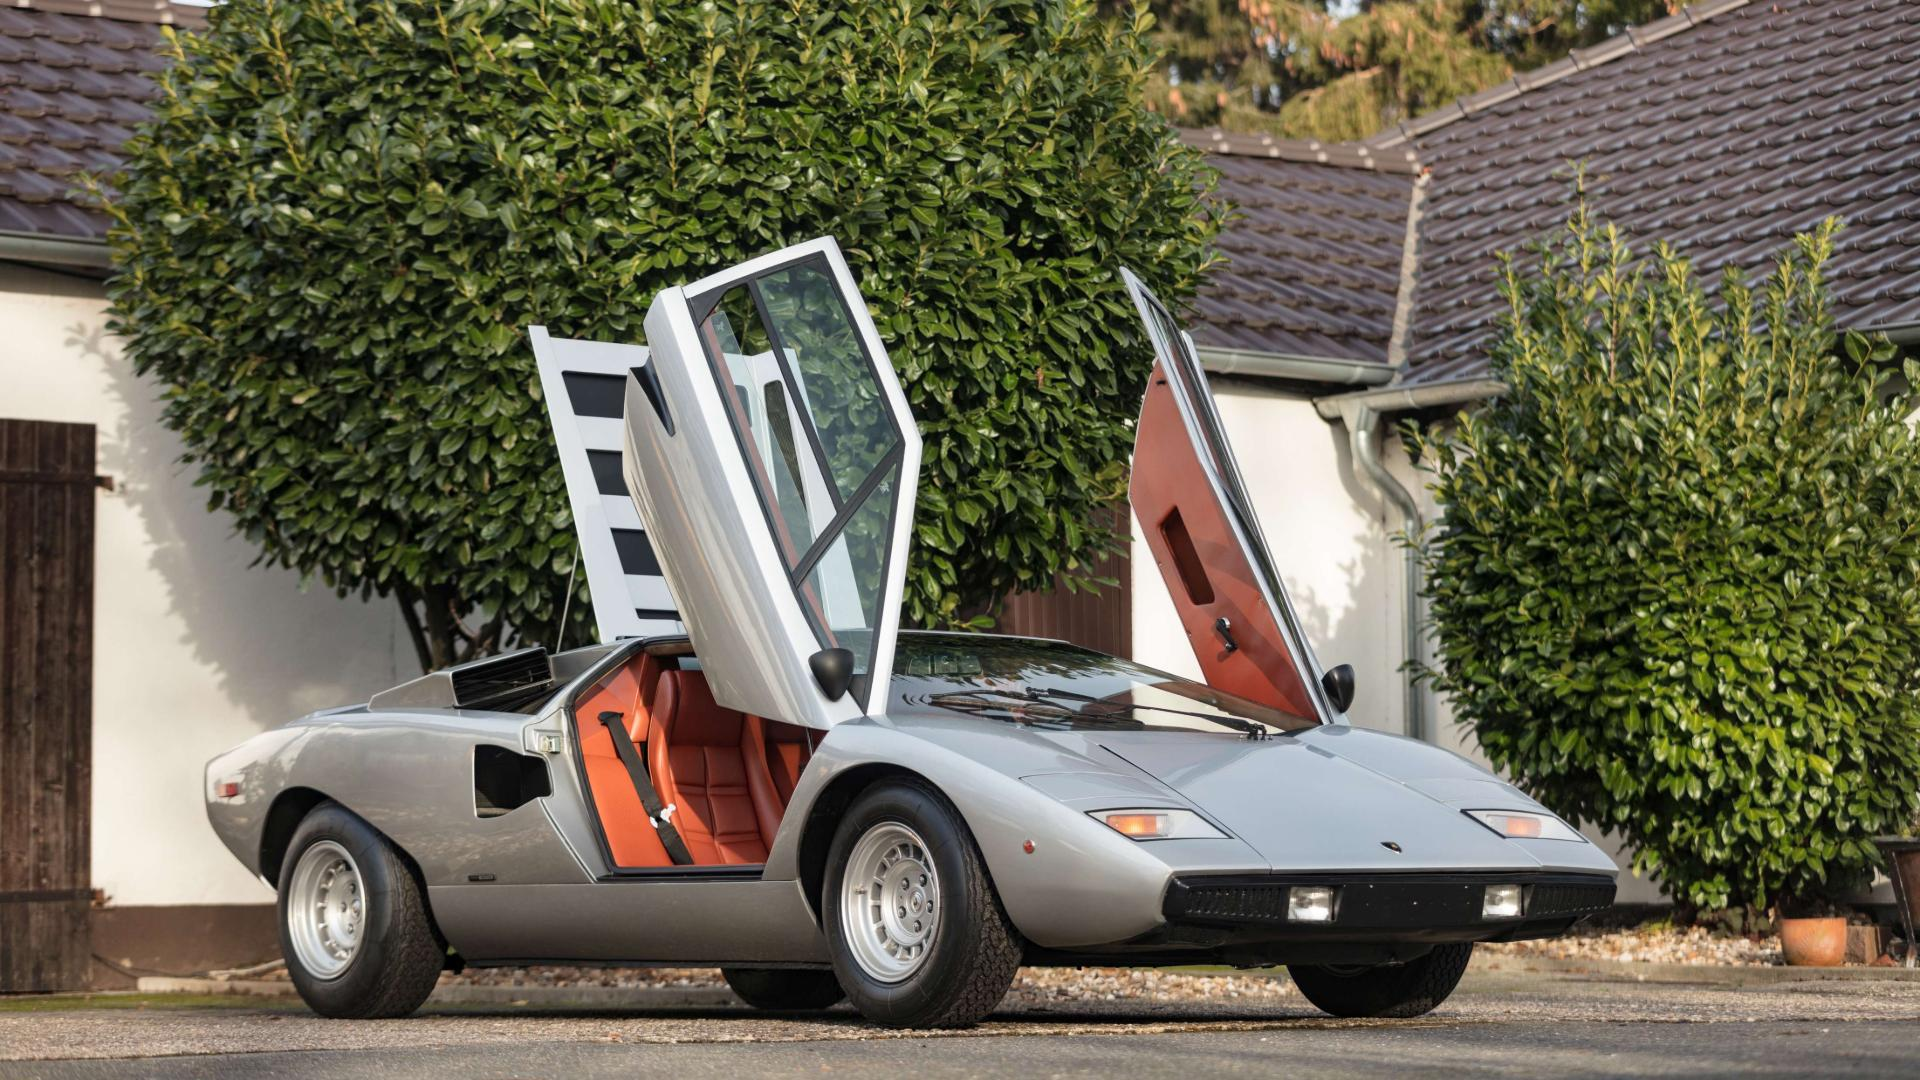 Buy the Countach Periscopio owned by Lamborghini's saviour